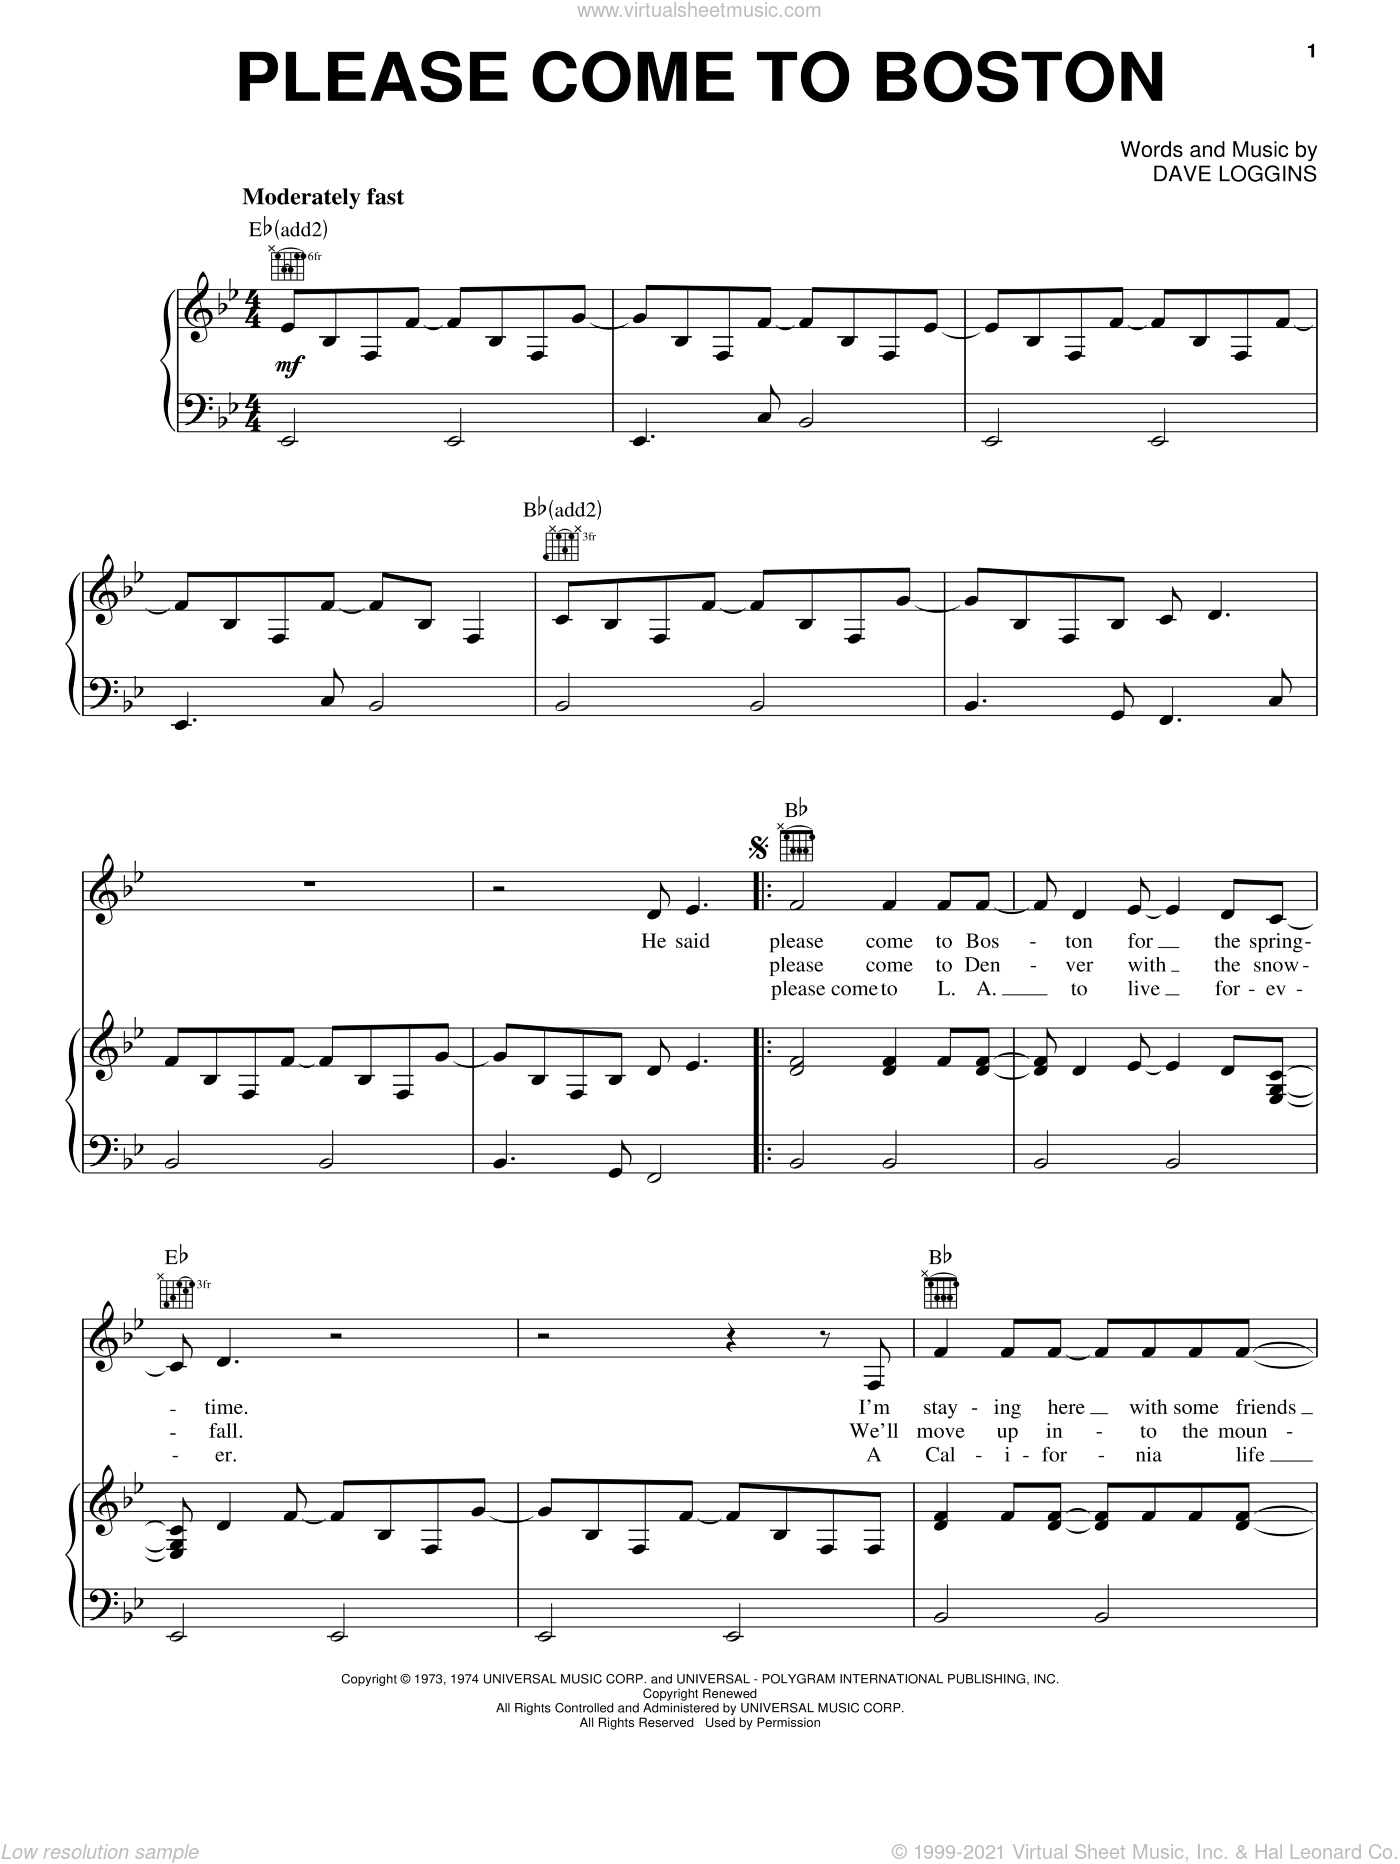 Please Come To Boston sheet music for voice, piano or guitar by Dave Loggins and Glen Campbell, intermediate voice, piano or guitar. Score Image Preview.